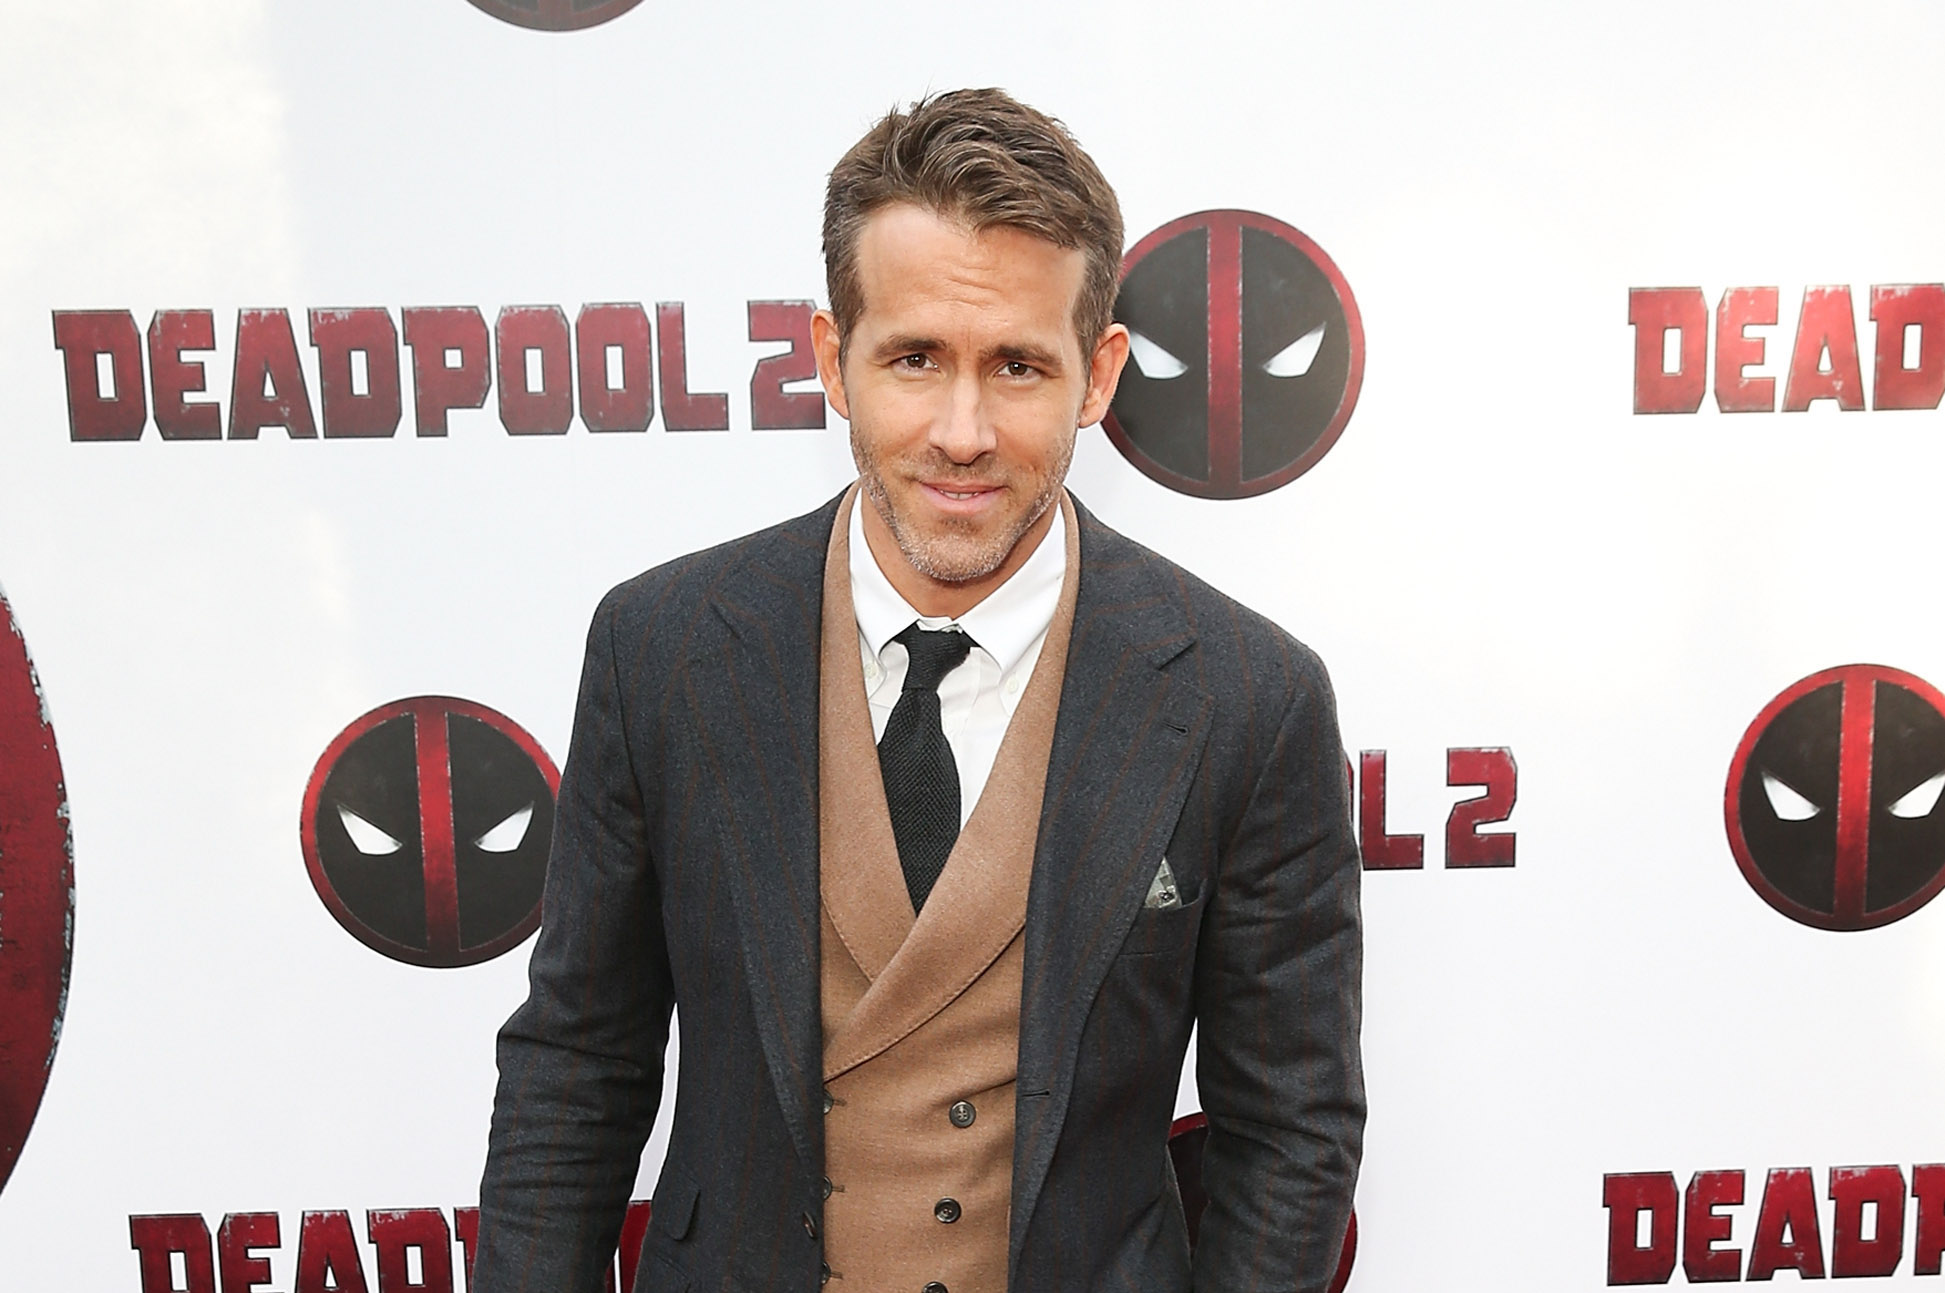 Surprise — Ryan Reynolds actually plays *two* characters in <em>Deadpool 2</em>